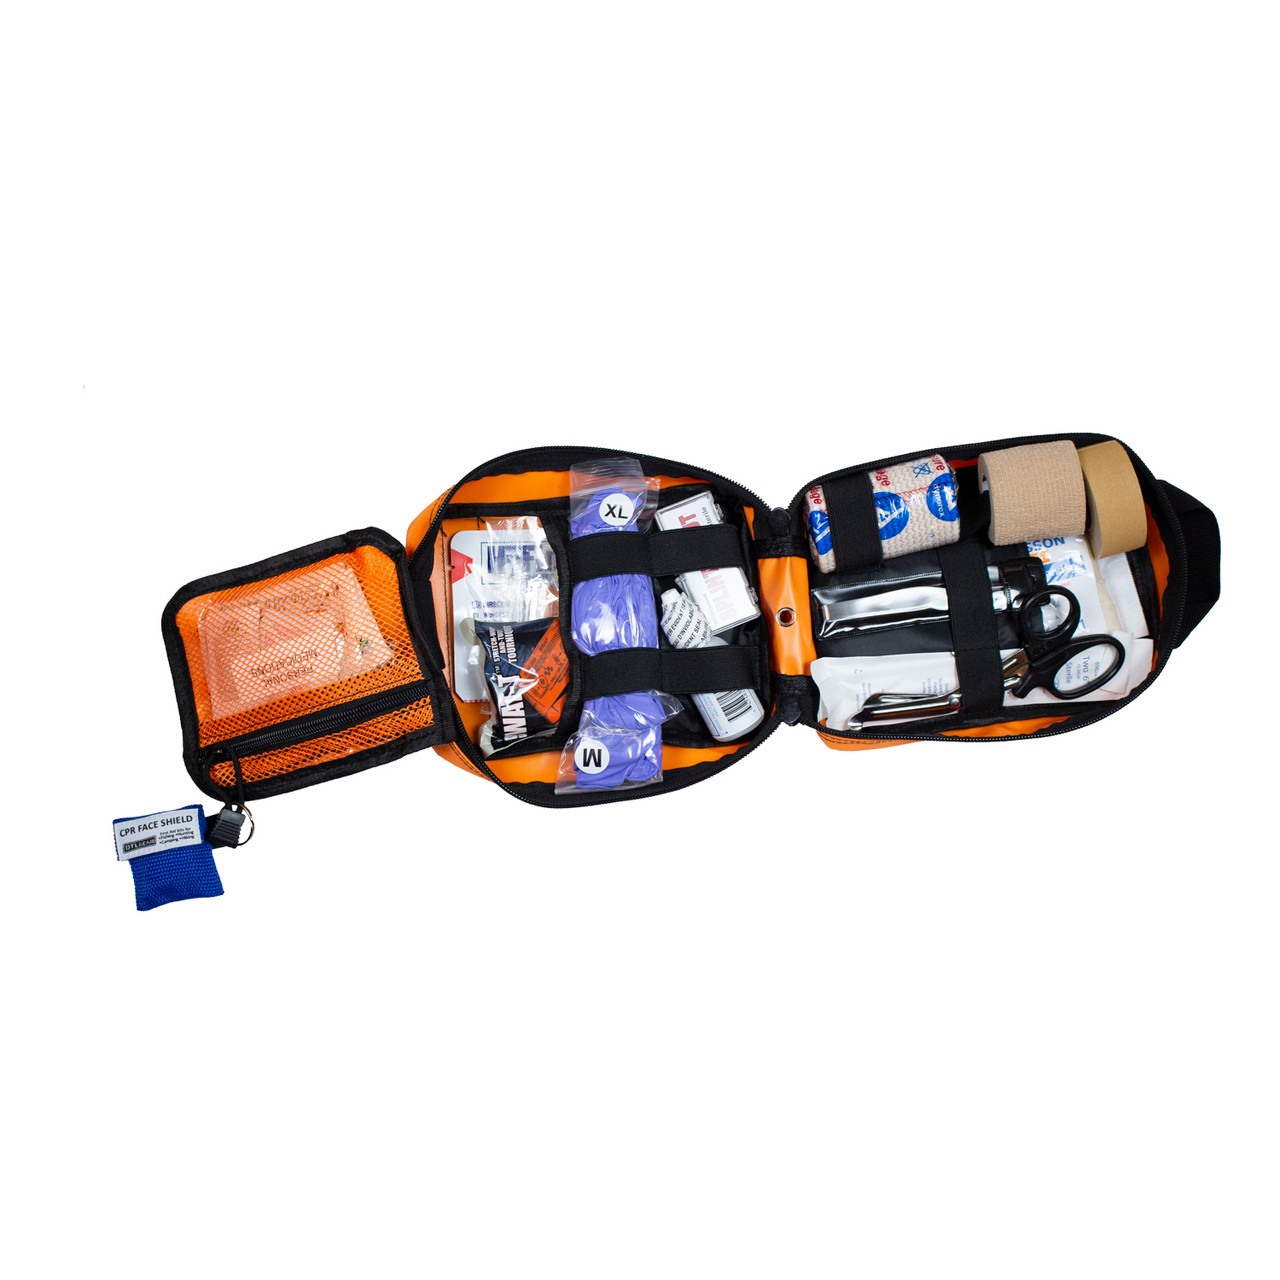 DTLgear High Quality Outdoorsman first aid kit Inside